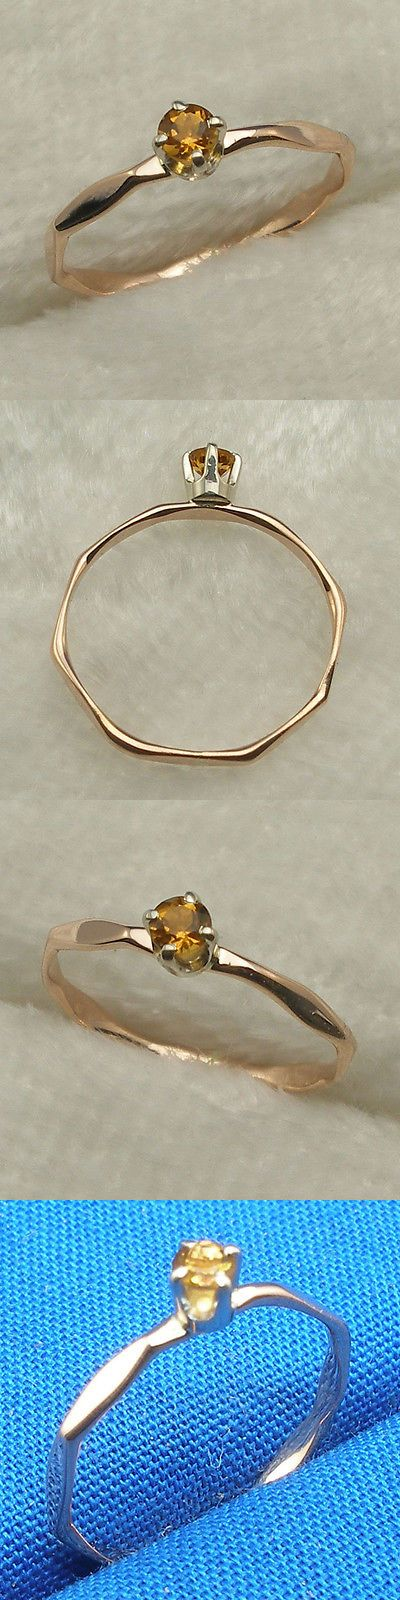 Rings 98477: November Birth Stone Baby Keepsake Ring, Hand Crafted 14K Rose Gold, Citrine -> BUY IT NOW ONLY: $53 on eBay!